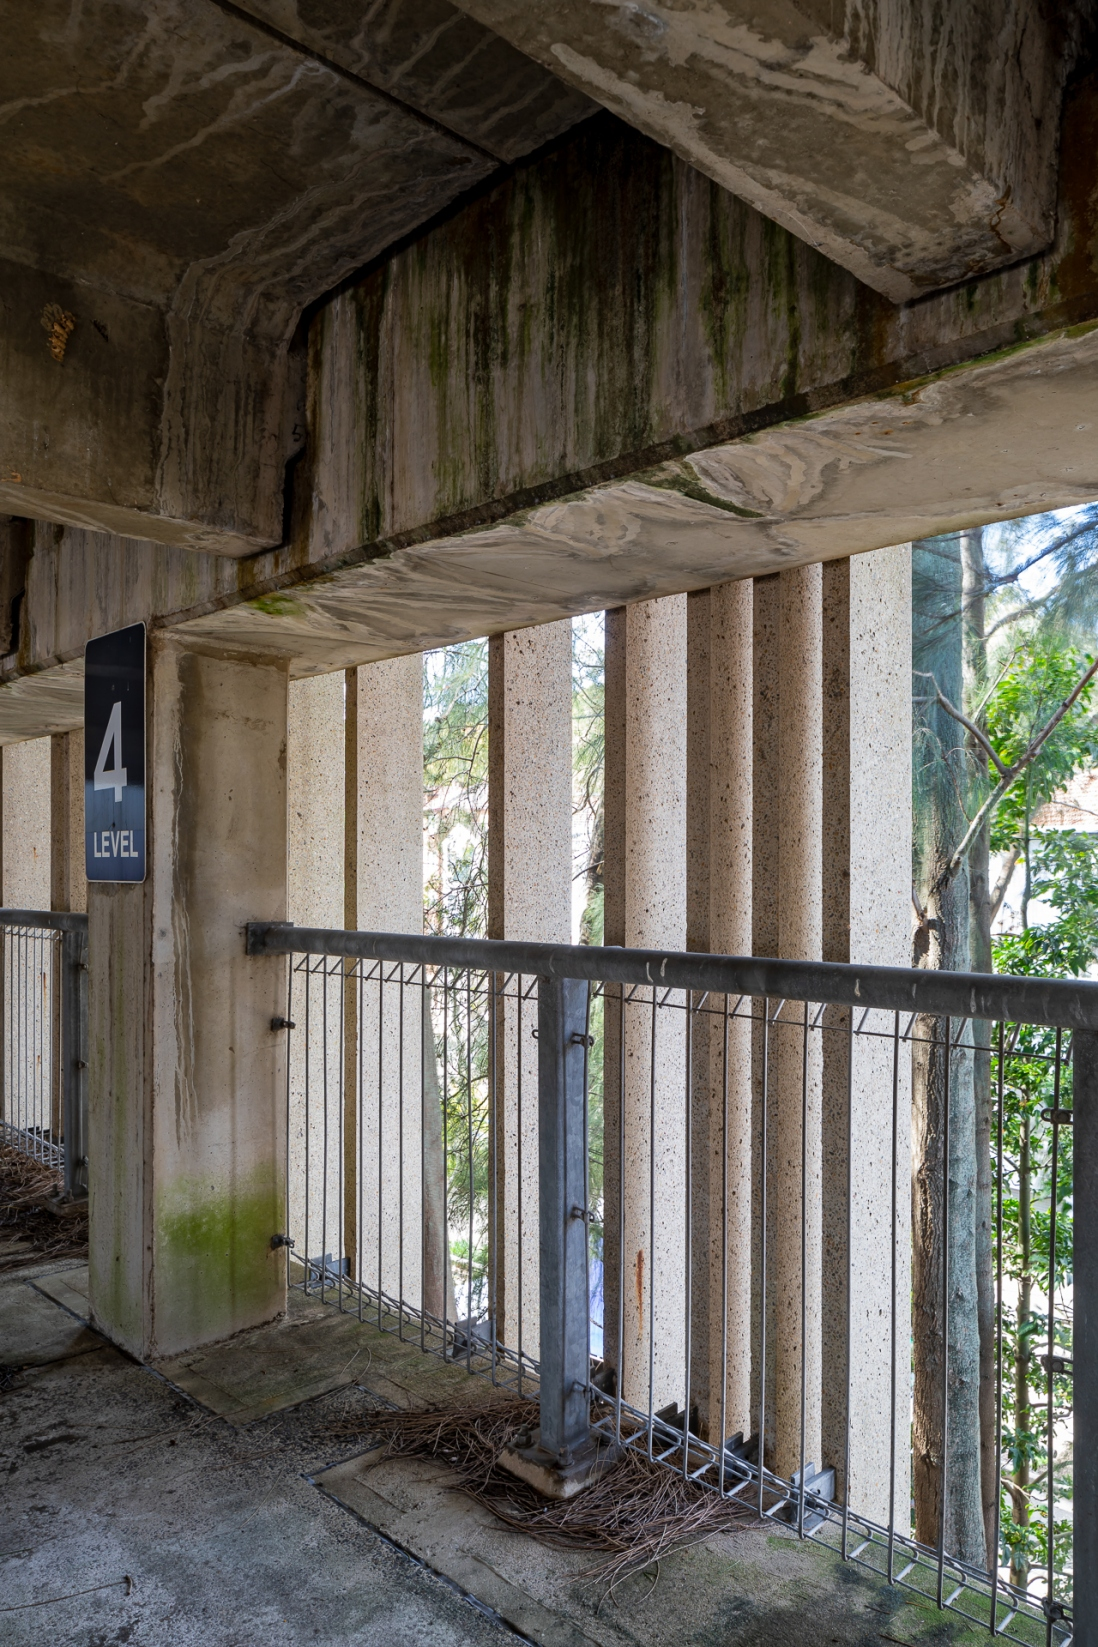 View looking out through the facade of the Cross Street Parking Building with water markings visible in the concrete